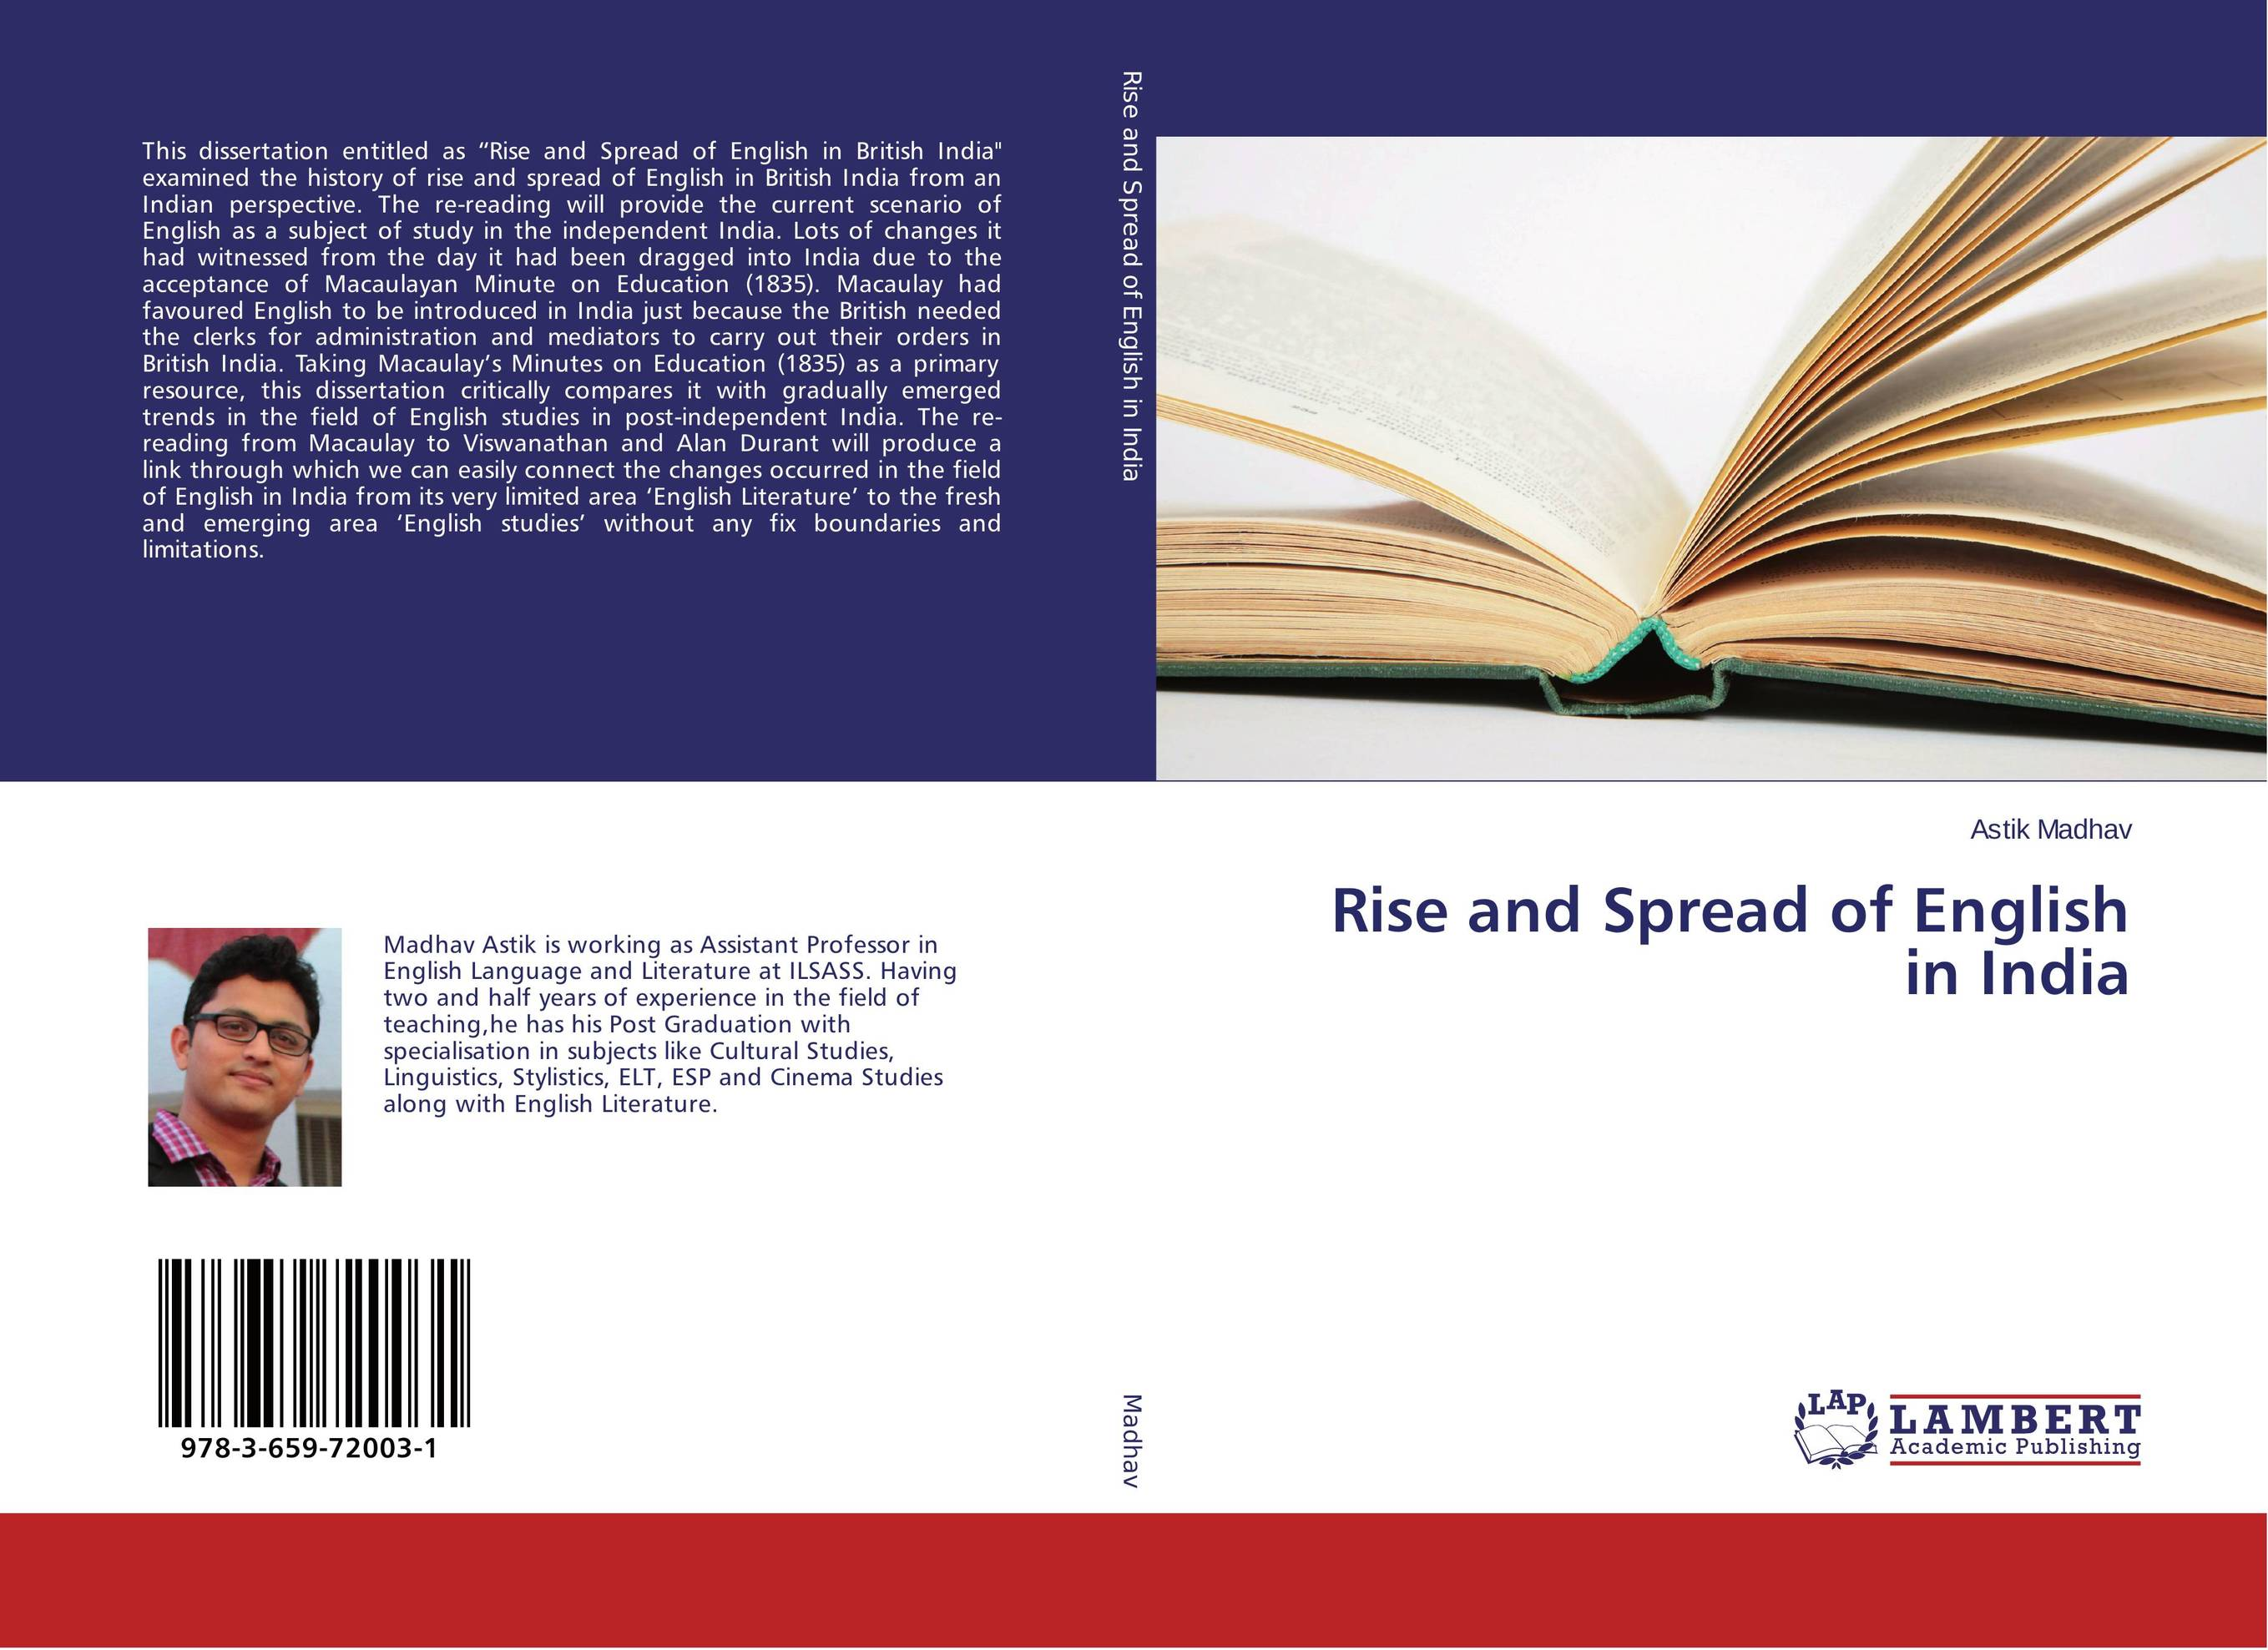 Rise and Spread of English in India